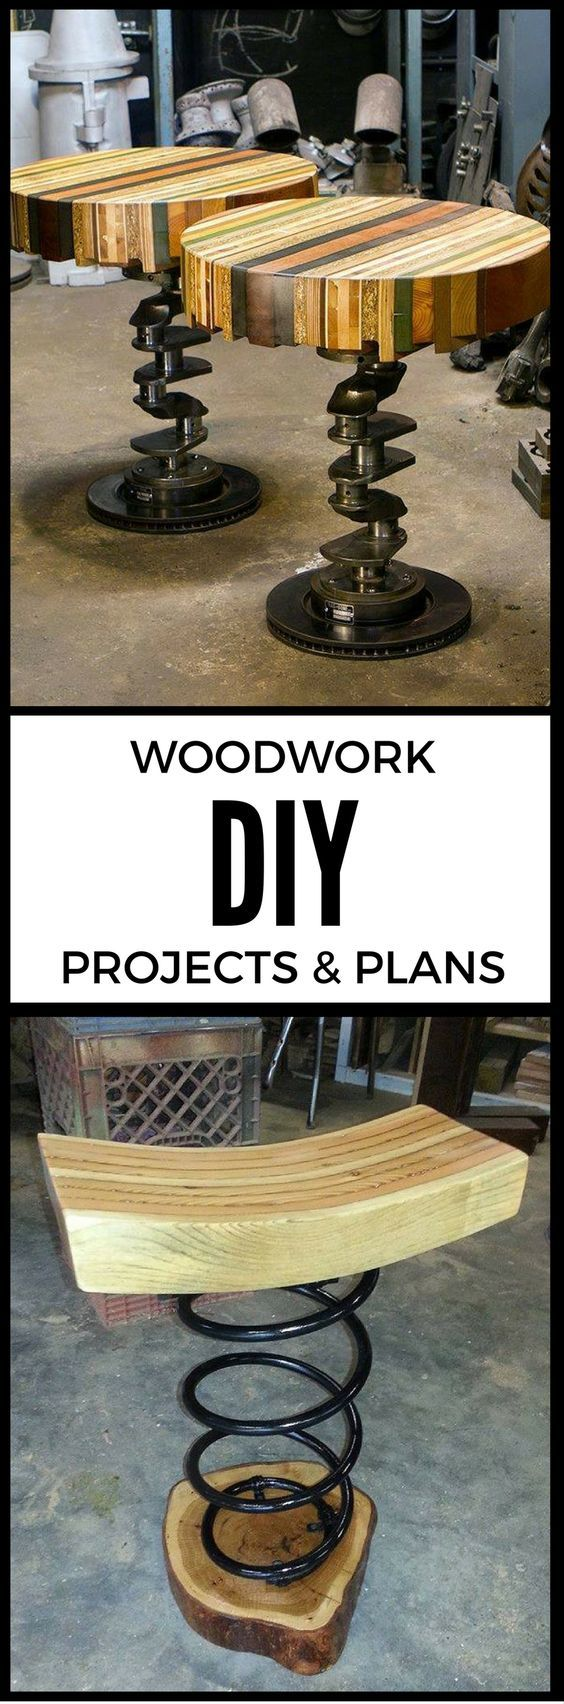 16000 diy woodworking projects do it yourself diy garage makeover 16000 diy woodworking projects do it yourself diy garage makeover ideas include storage organization shelves and project plans for cool new garage solutioingenieria Gallery